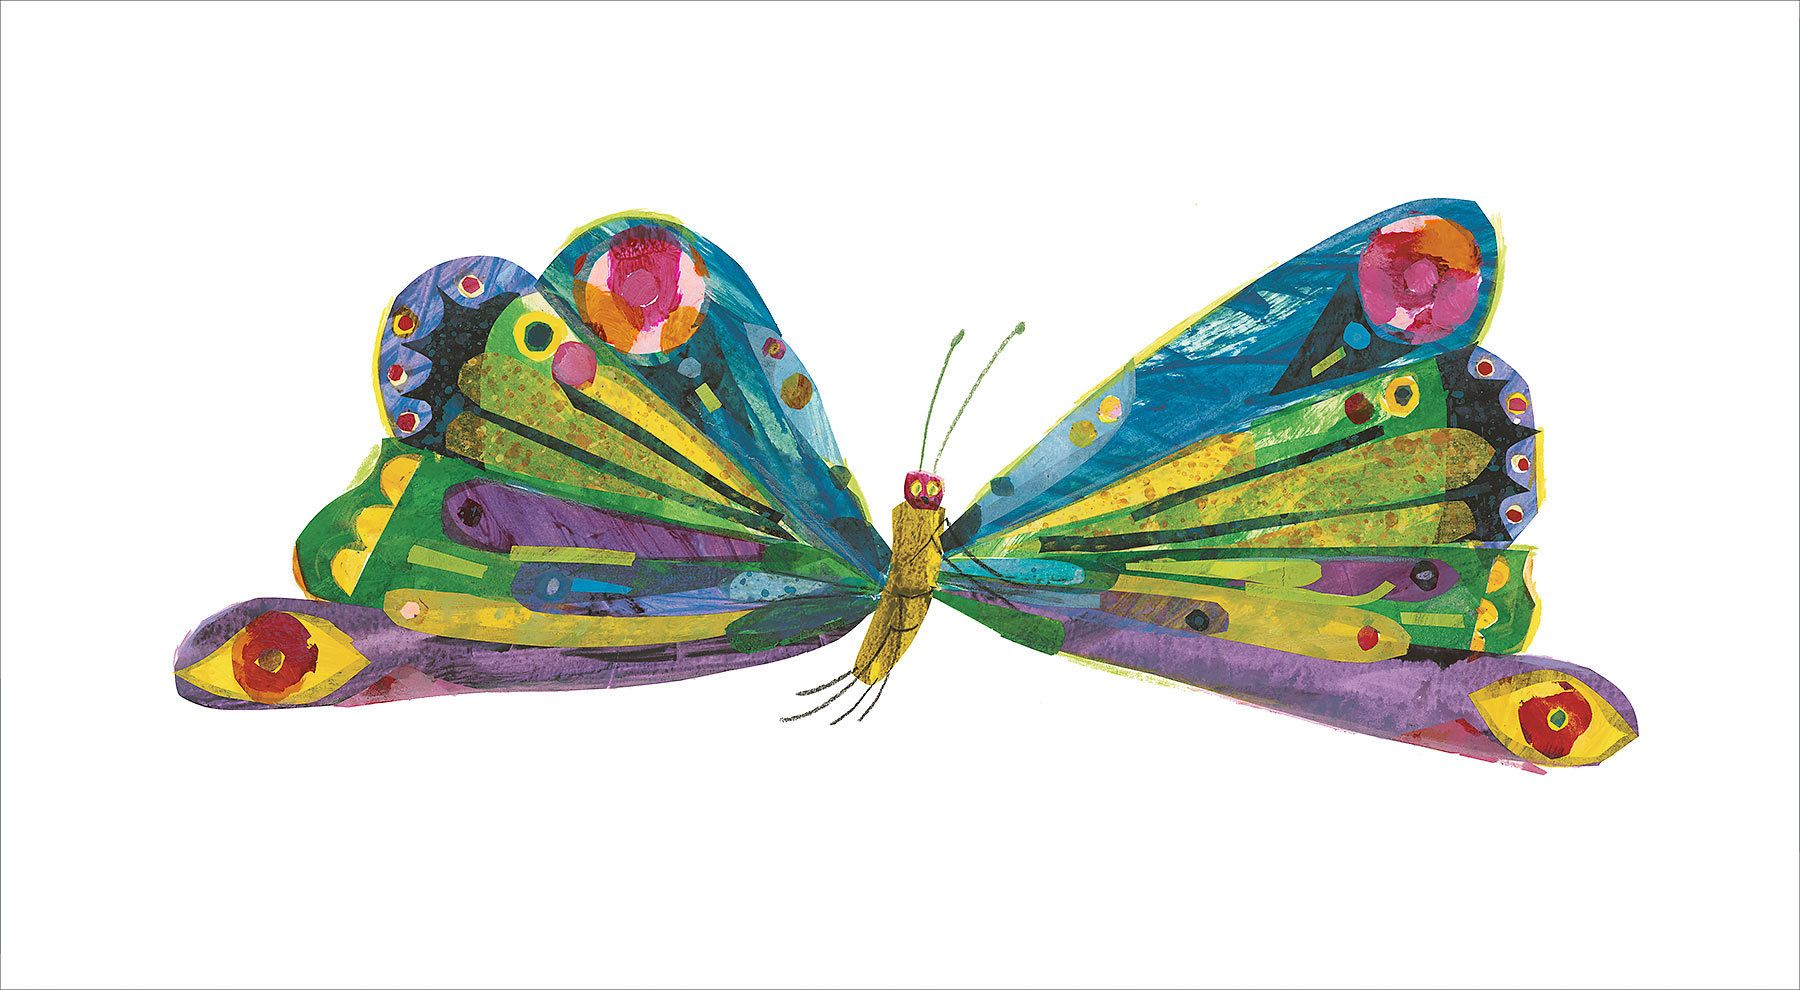 Eric carle butterfly clipart clipart transparent Eric Carle - butterfly | Art, Illustration, Paintings and more ... clipart transparent